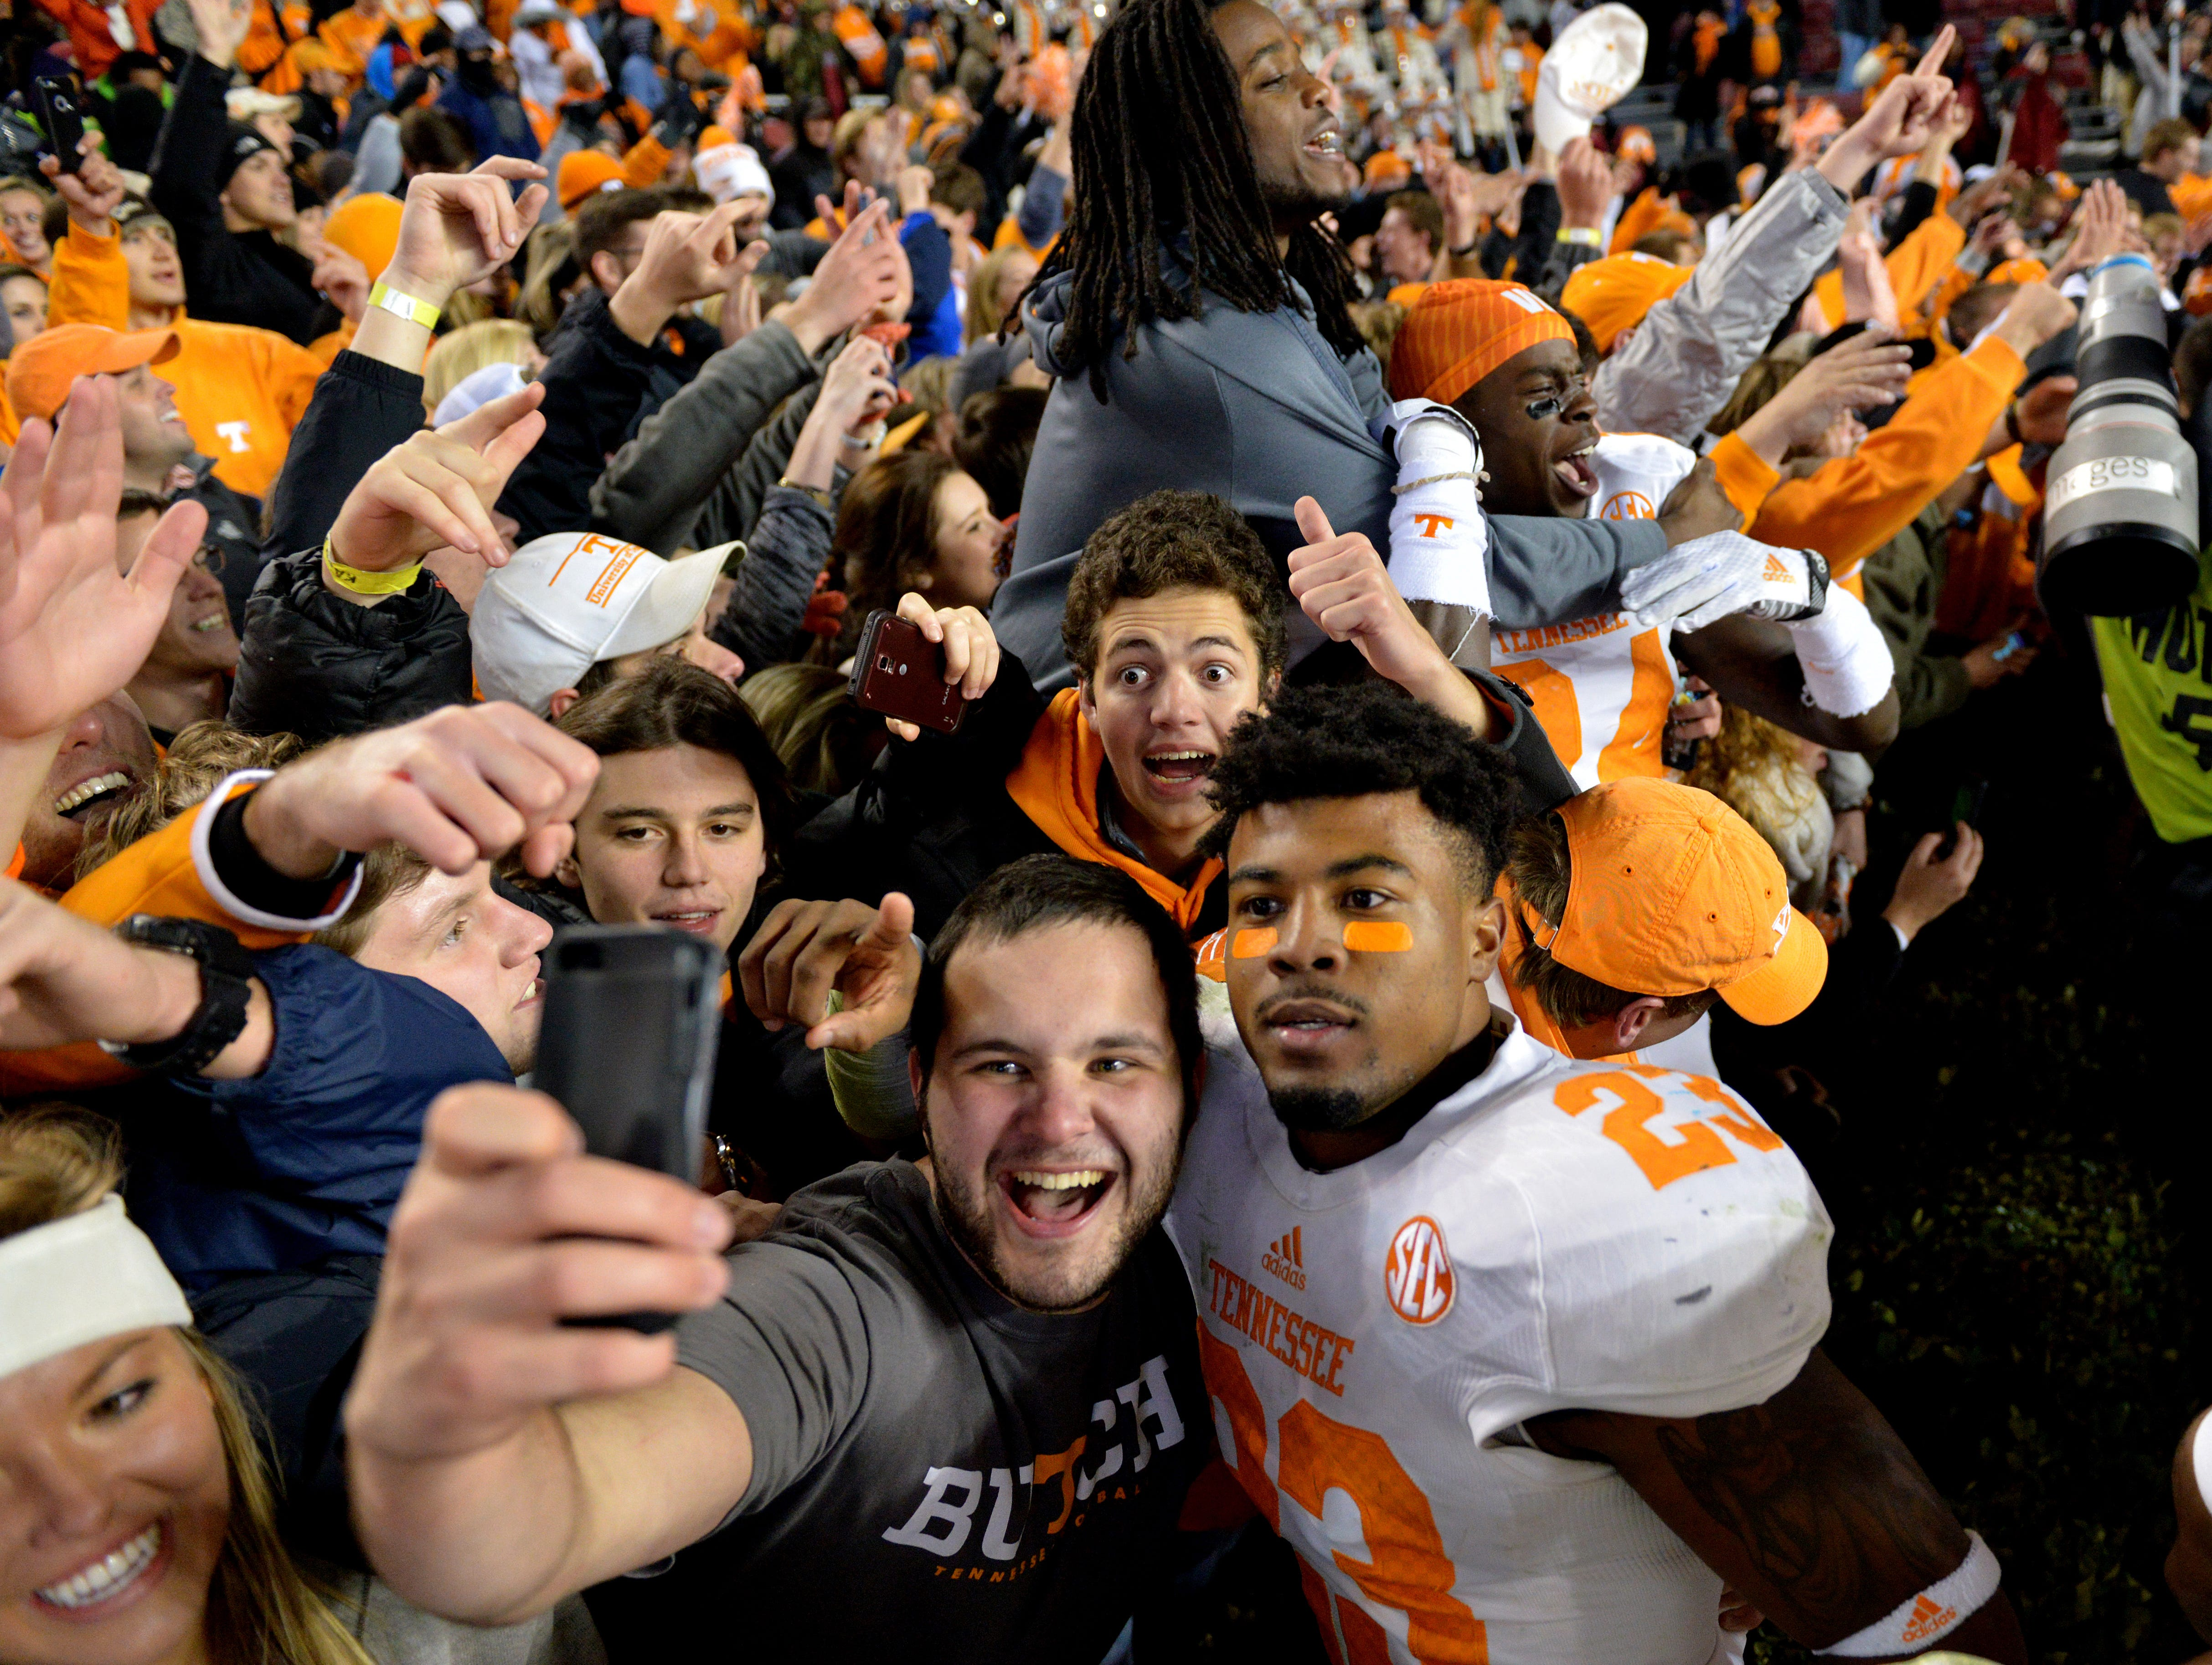 Tennessee defensive back Cameron Sutton (23) celebrates with fans following their 45-42 win in overtime against South Carolina in Williams-Brice Stadium Saturday, Nov. 1, 2014 in Columbia, S.C.